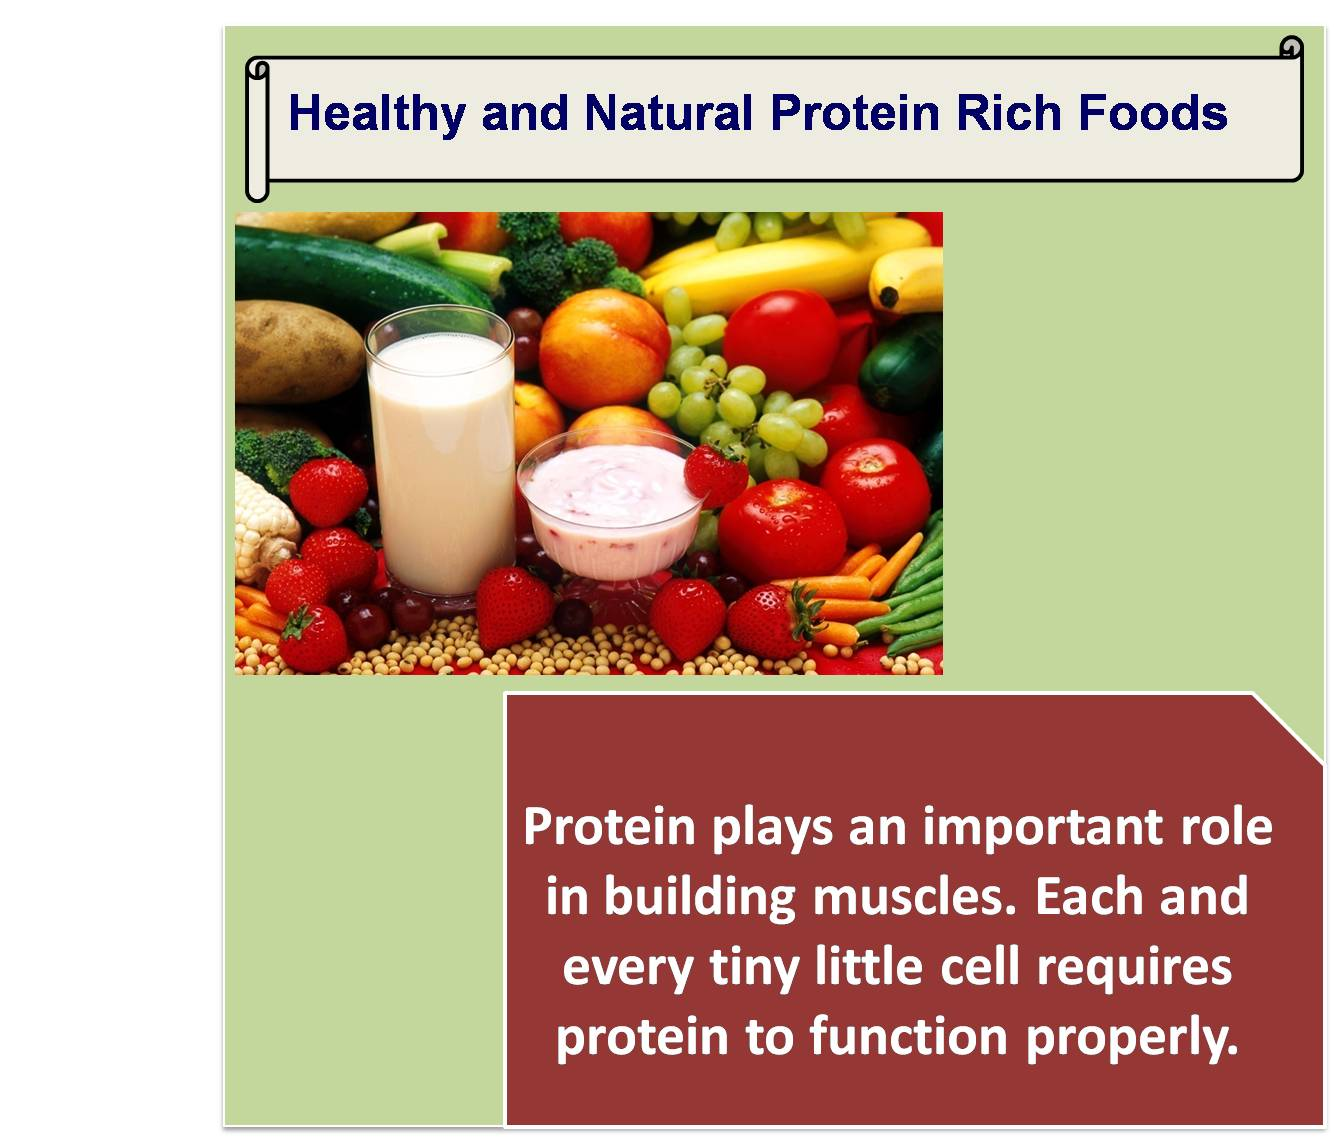 Healthy and natural protein rich foods